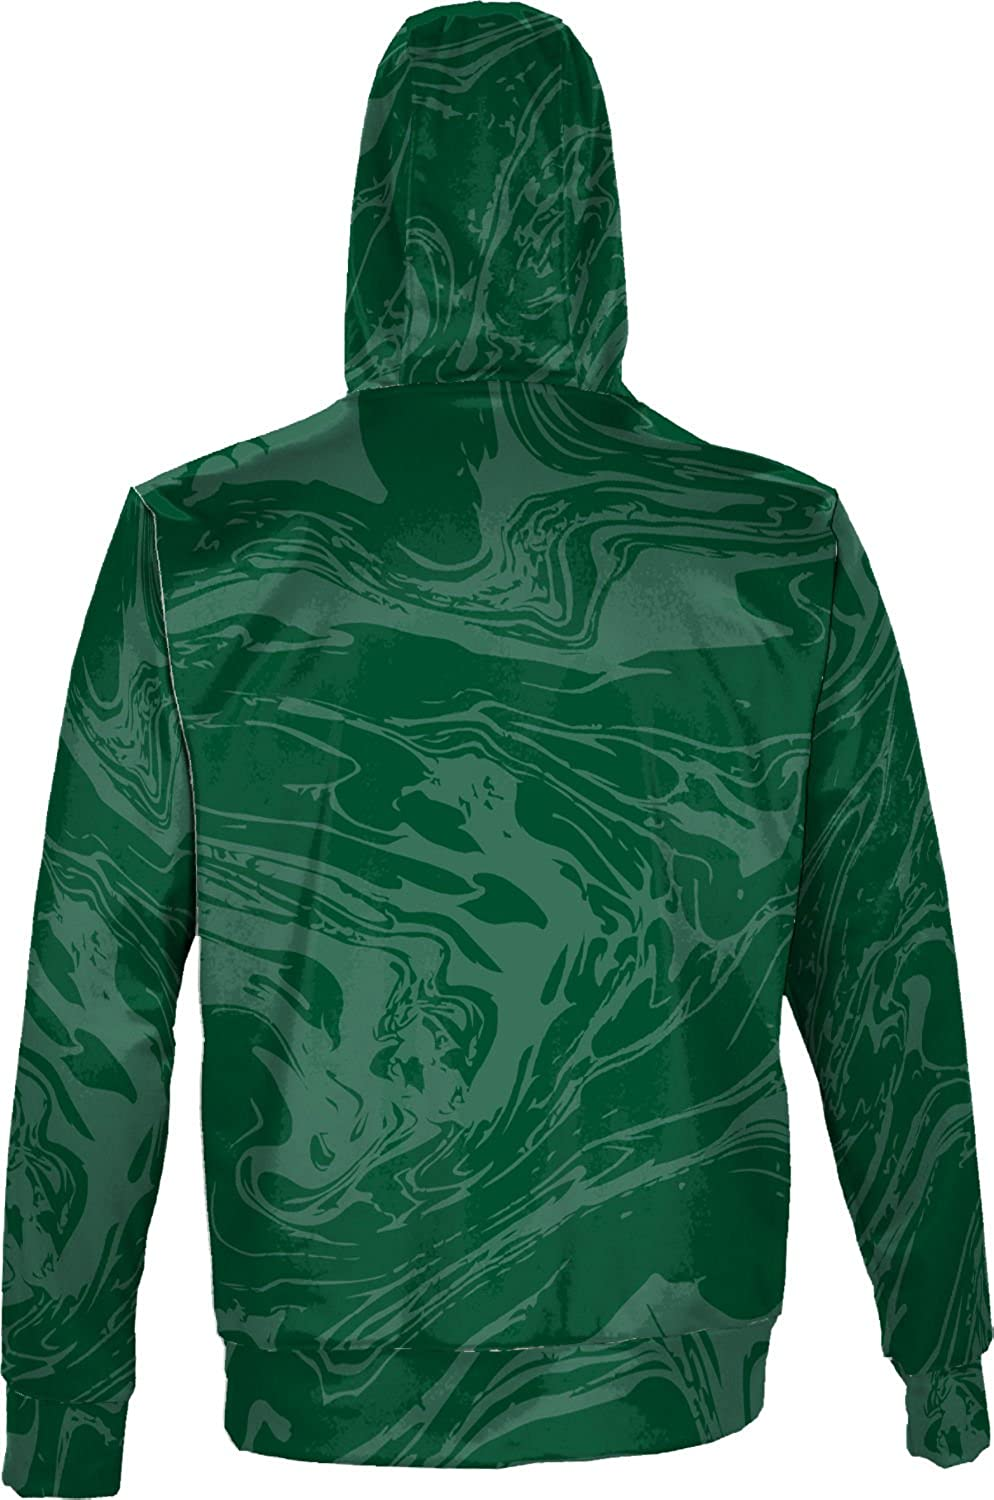 Ripple ProSphere University of Hawaii Mens Pullover Hoodie School Spirit Sweatshirt